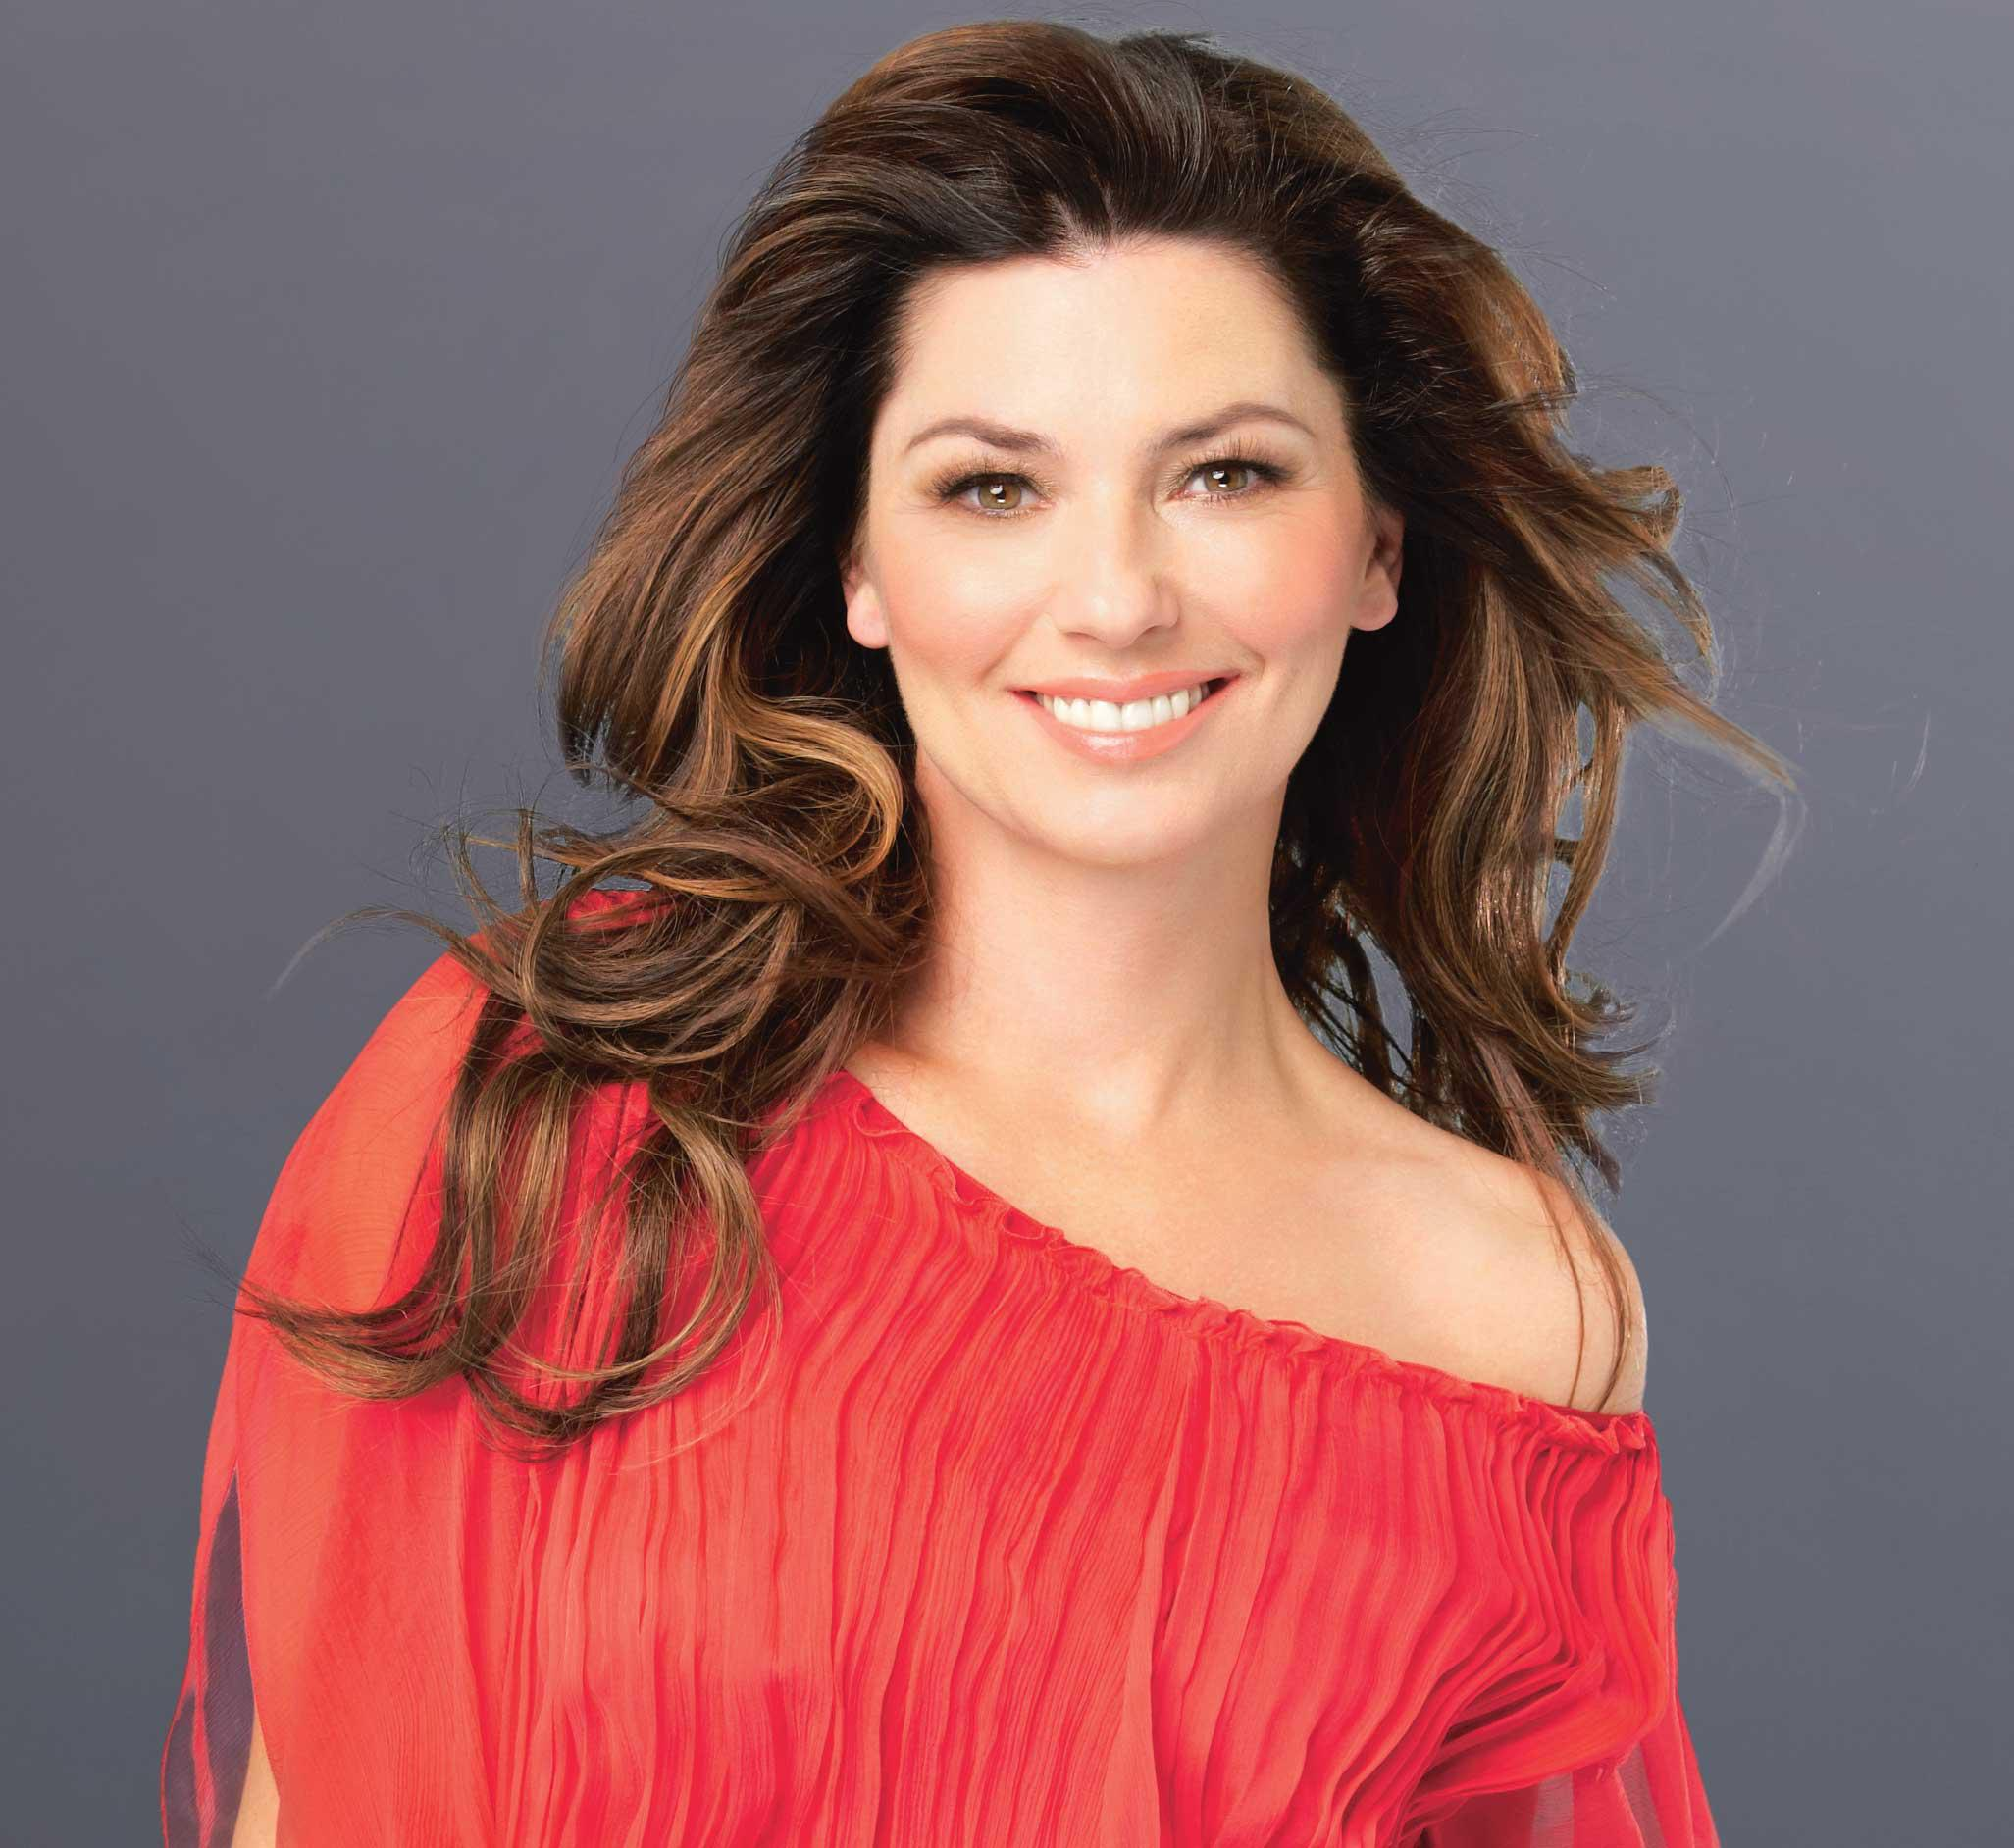 Today's pairing: Shania Twain's farewell tour + faux fried chicken